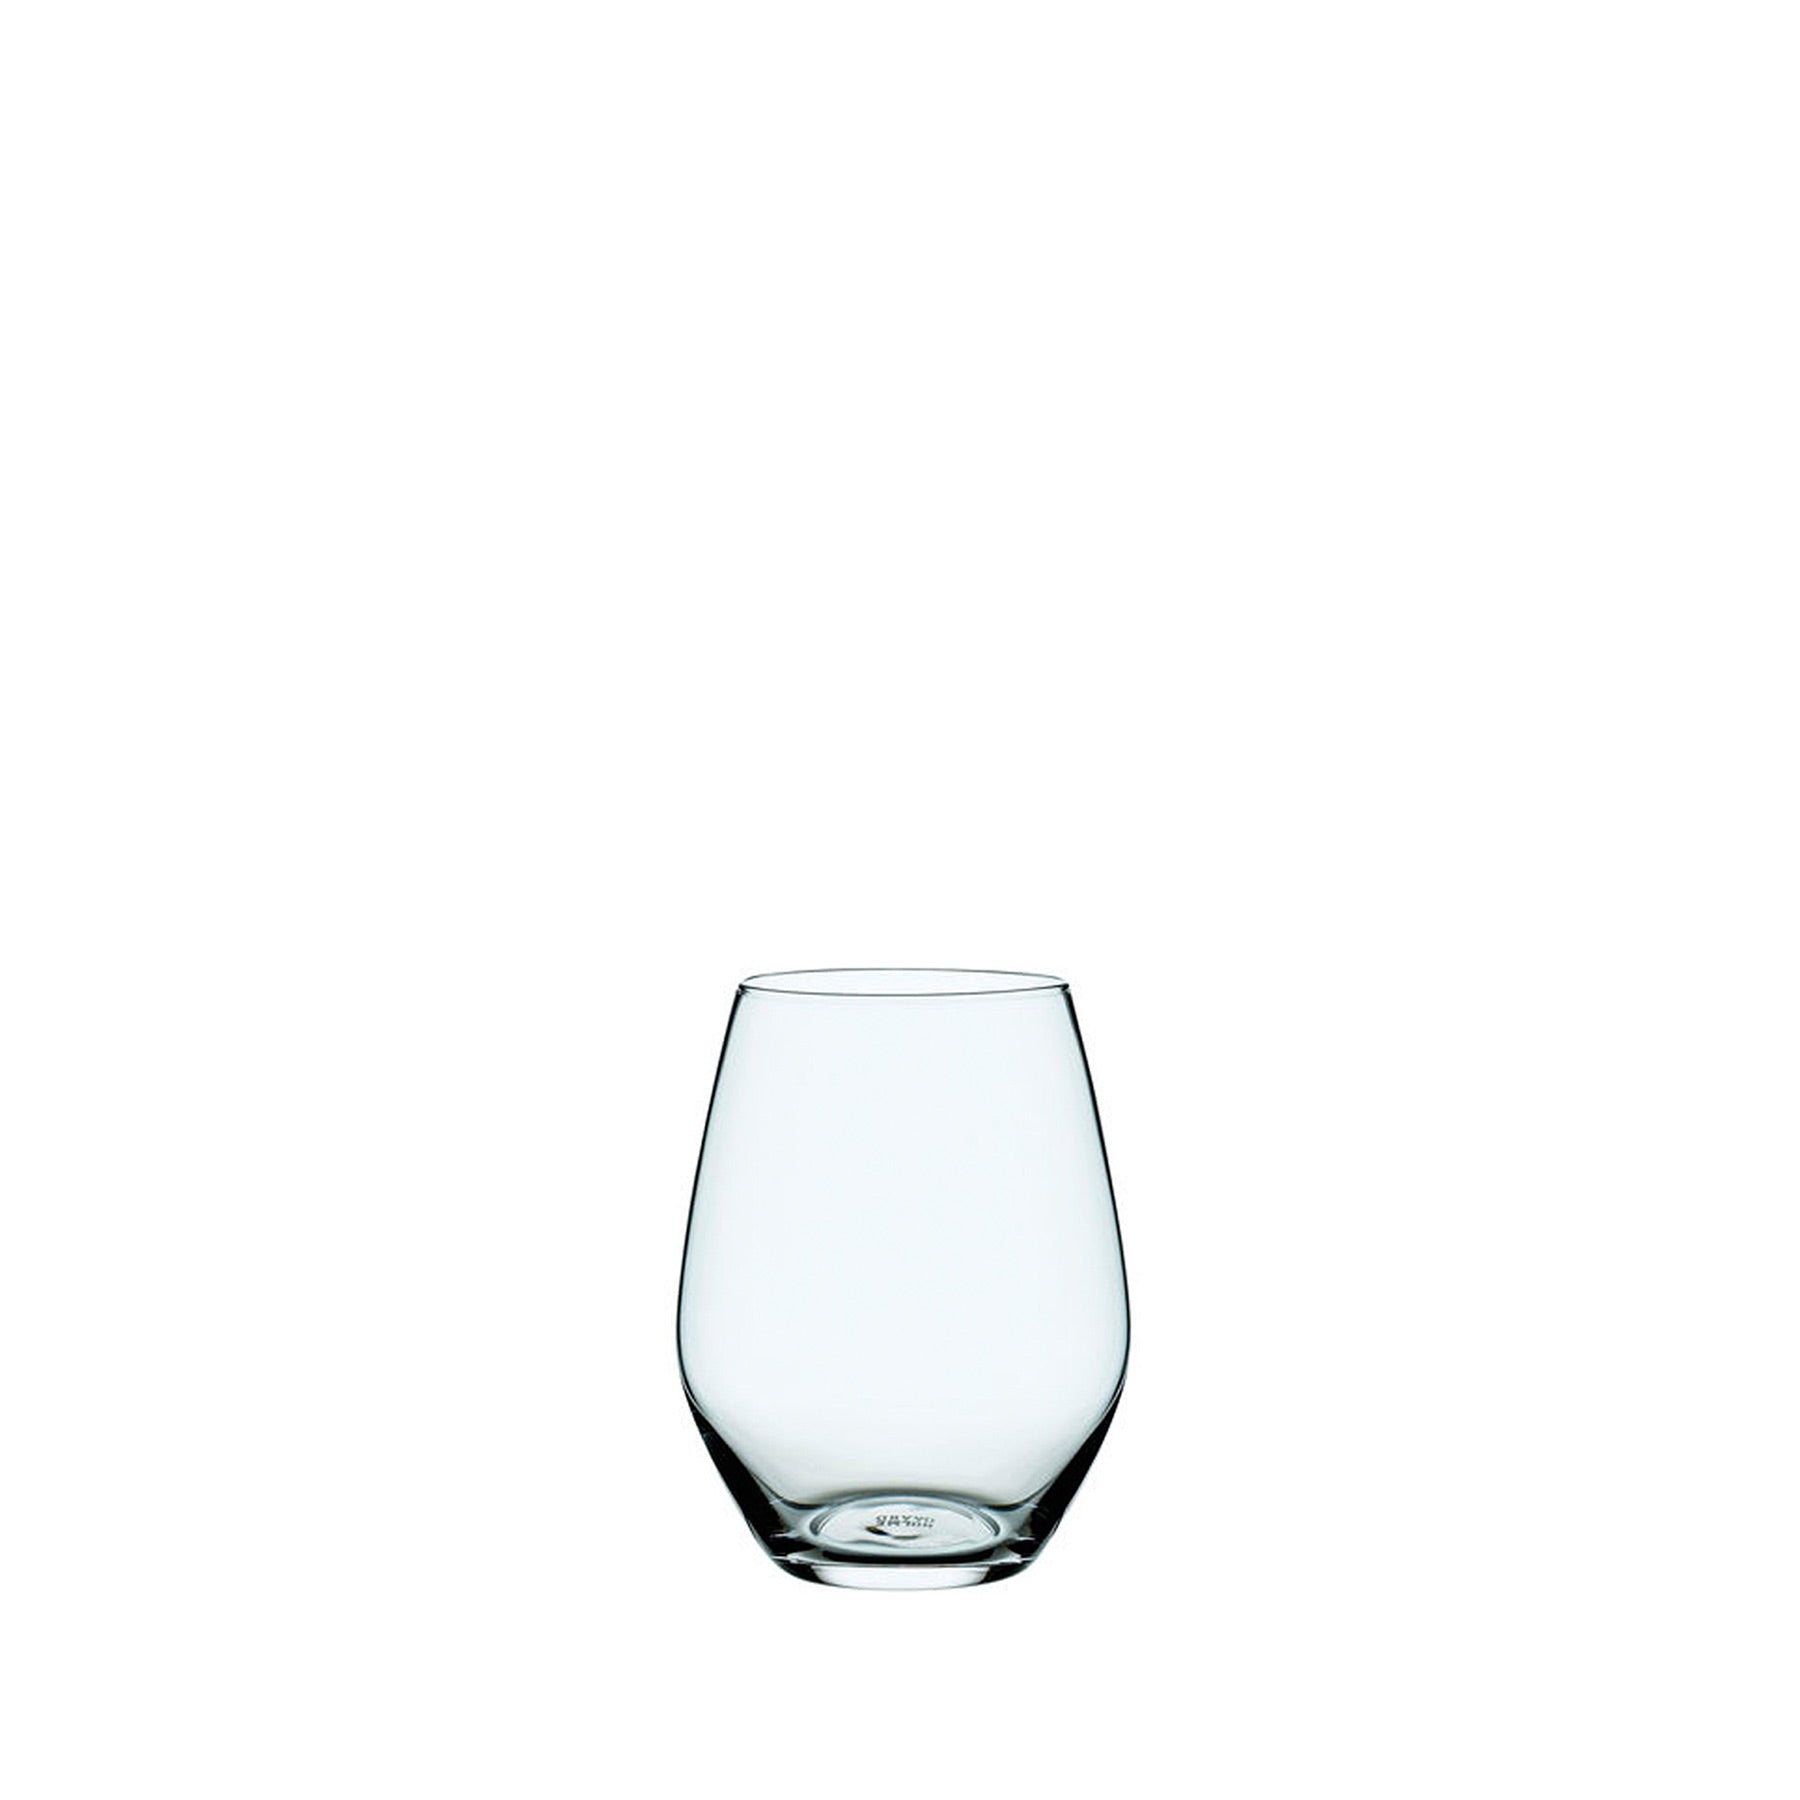 Cabernet Water Glass Zoom Image 1